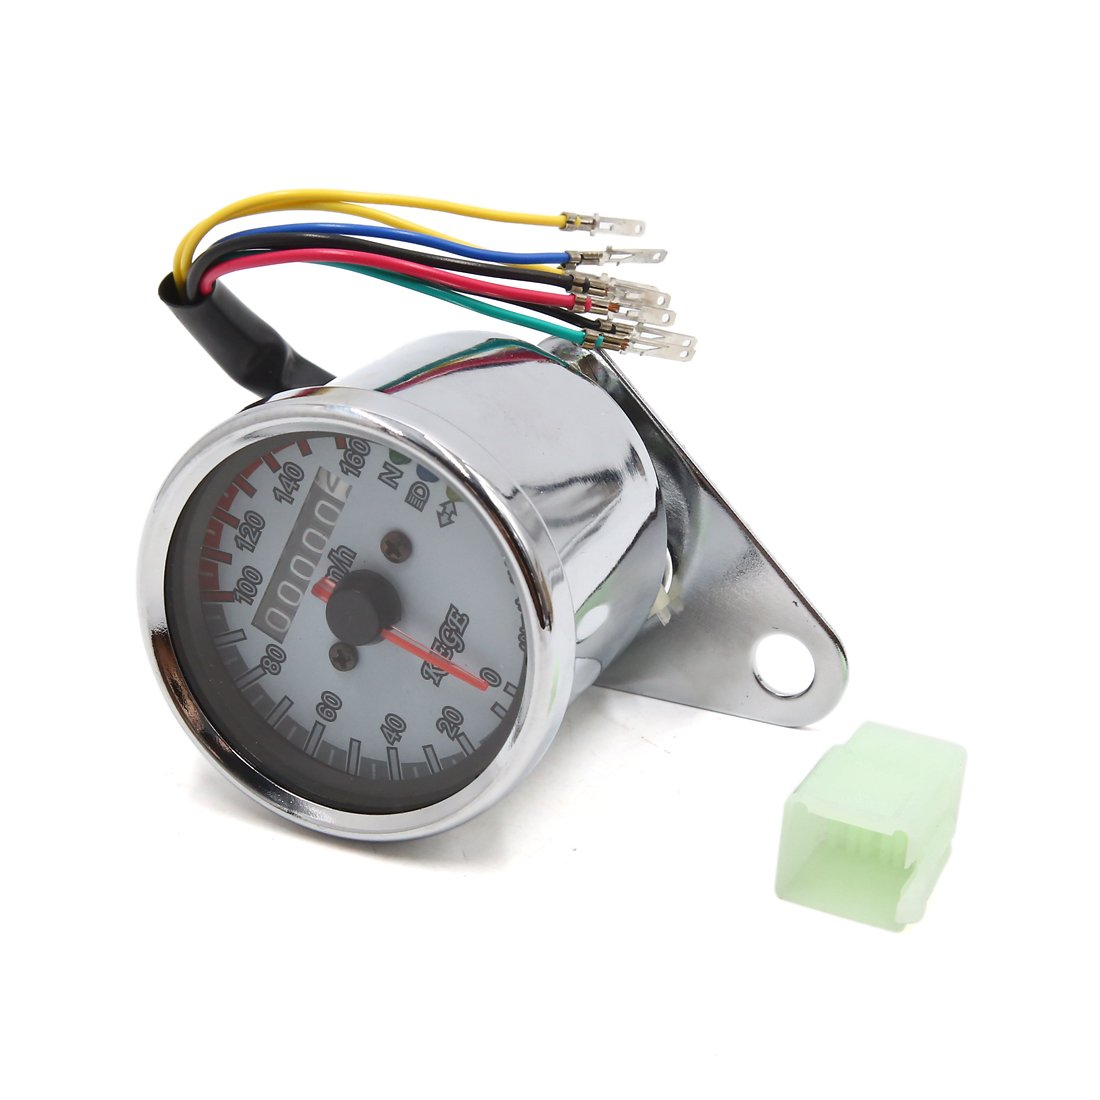 uxcell Universal Motorcycle LED Backlight Signal Odometer Speedometer Tachometer Gauge